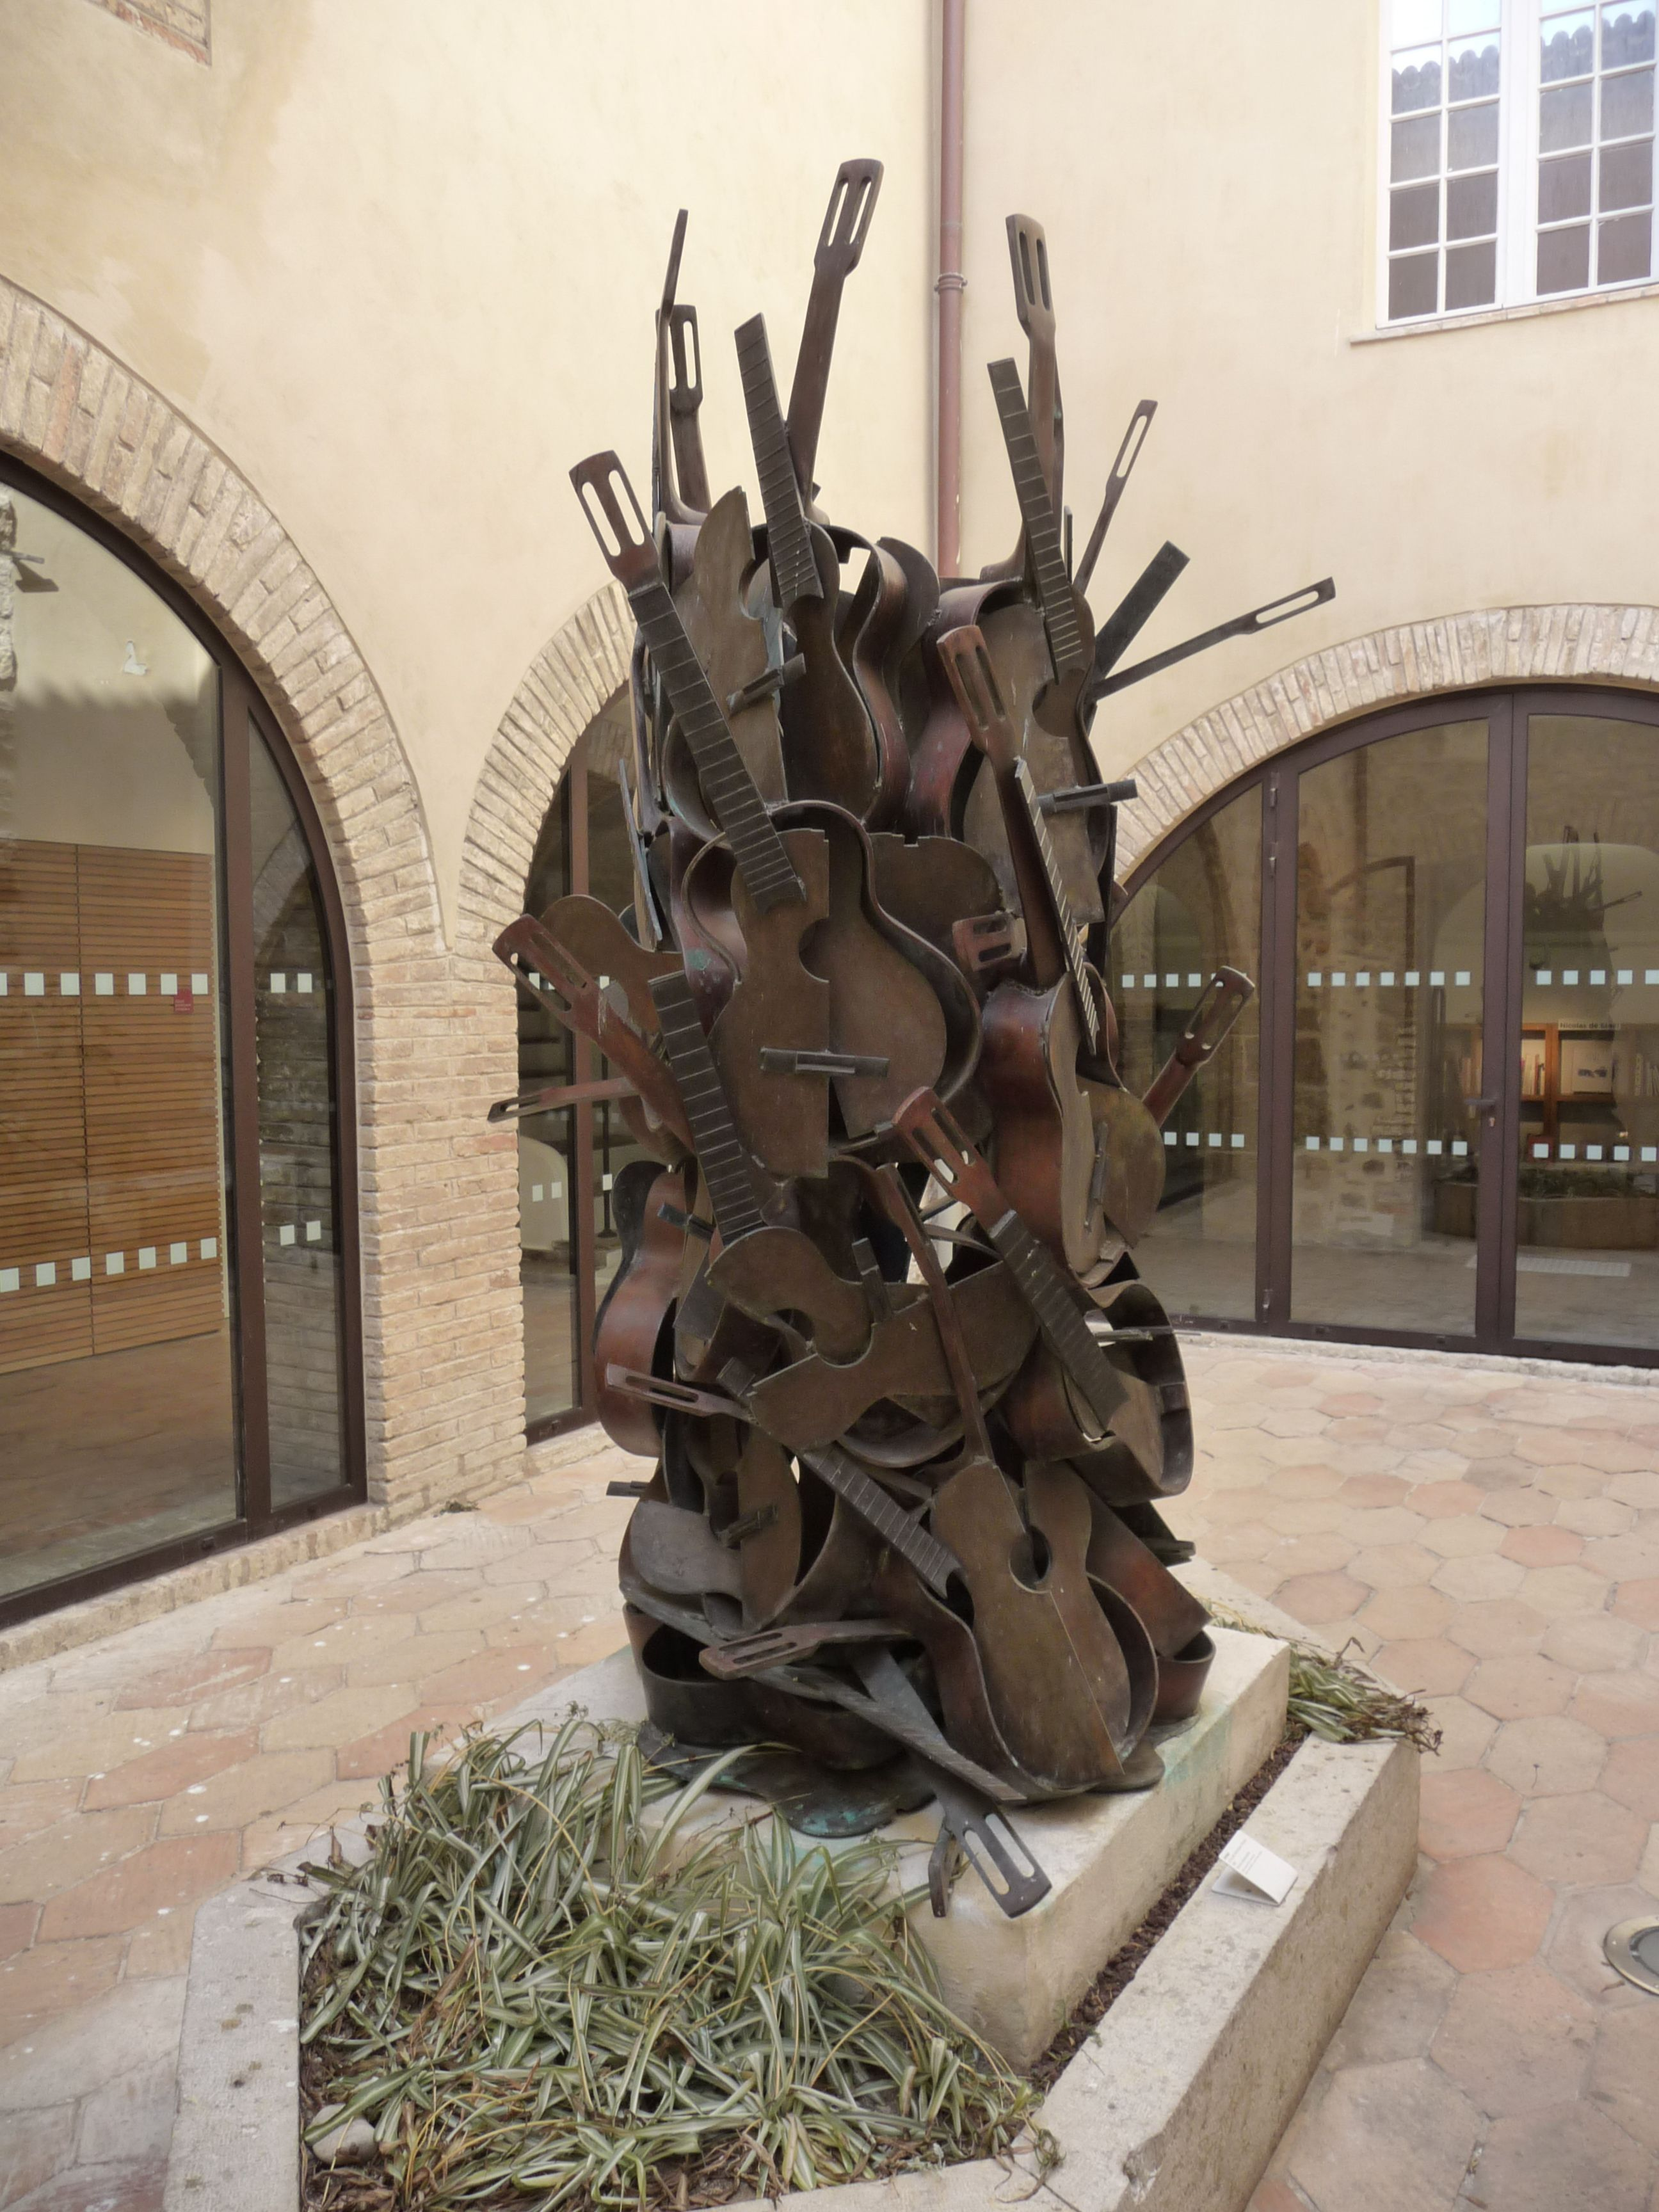 musee picasso antibes - Google Search